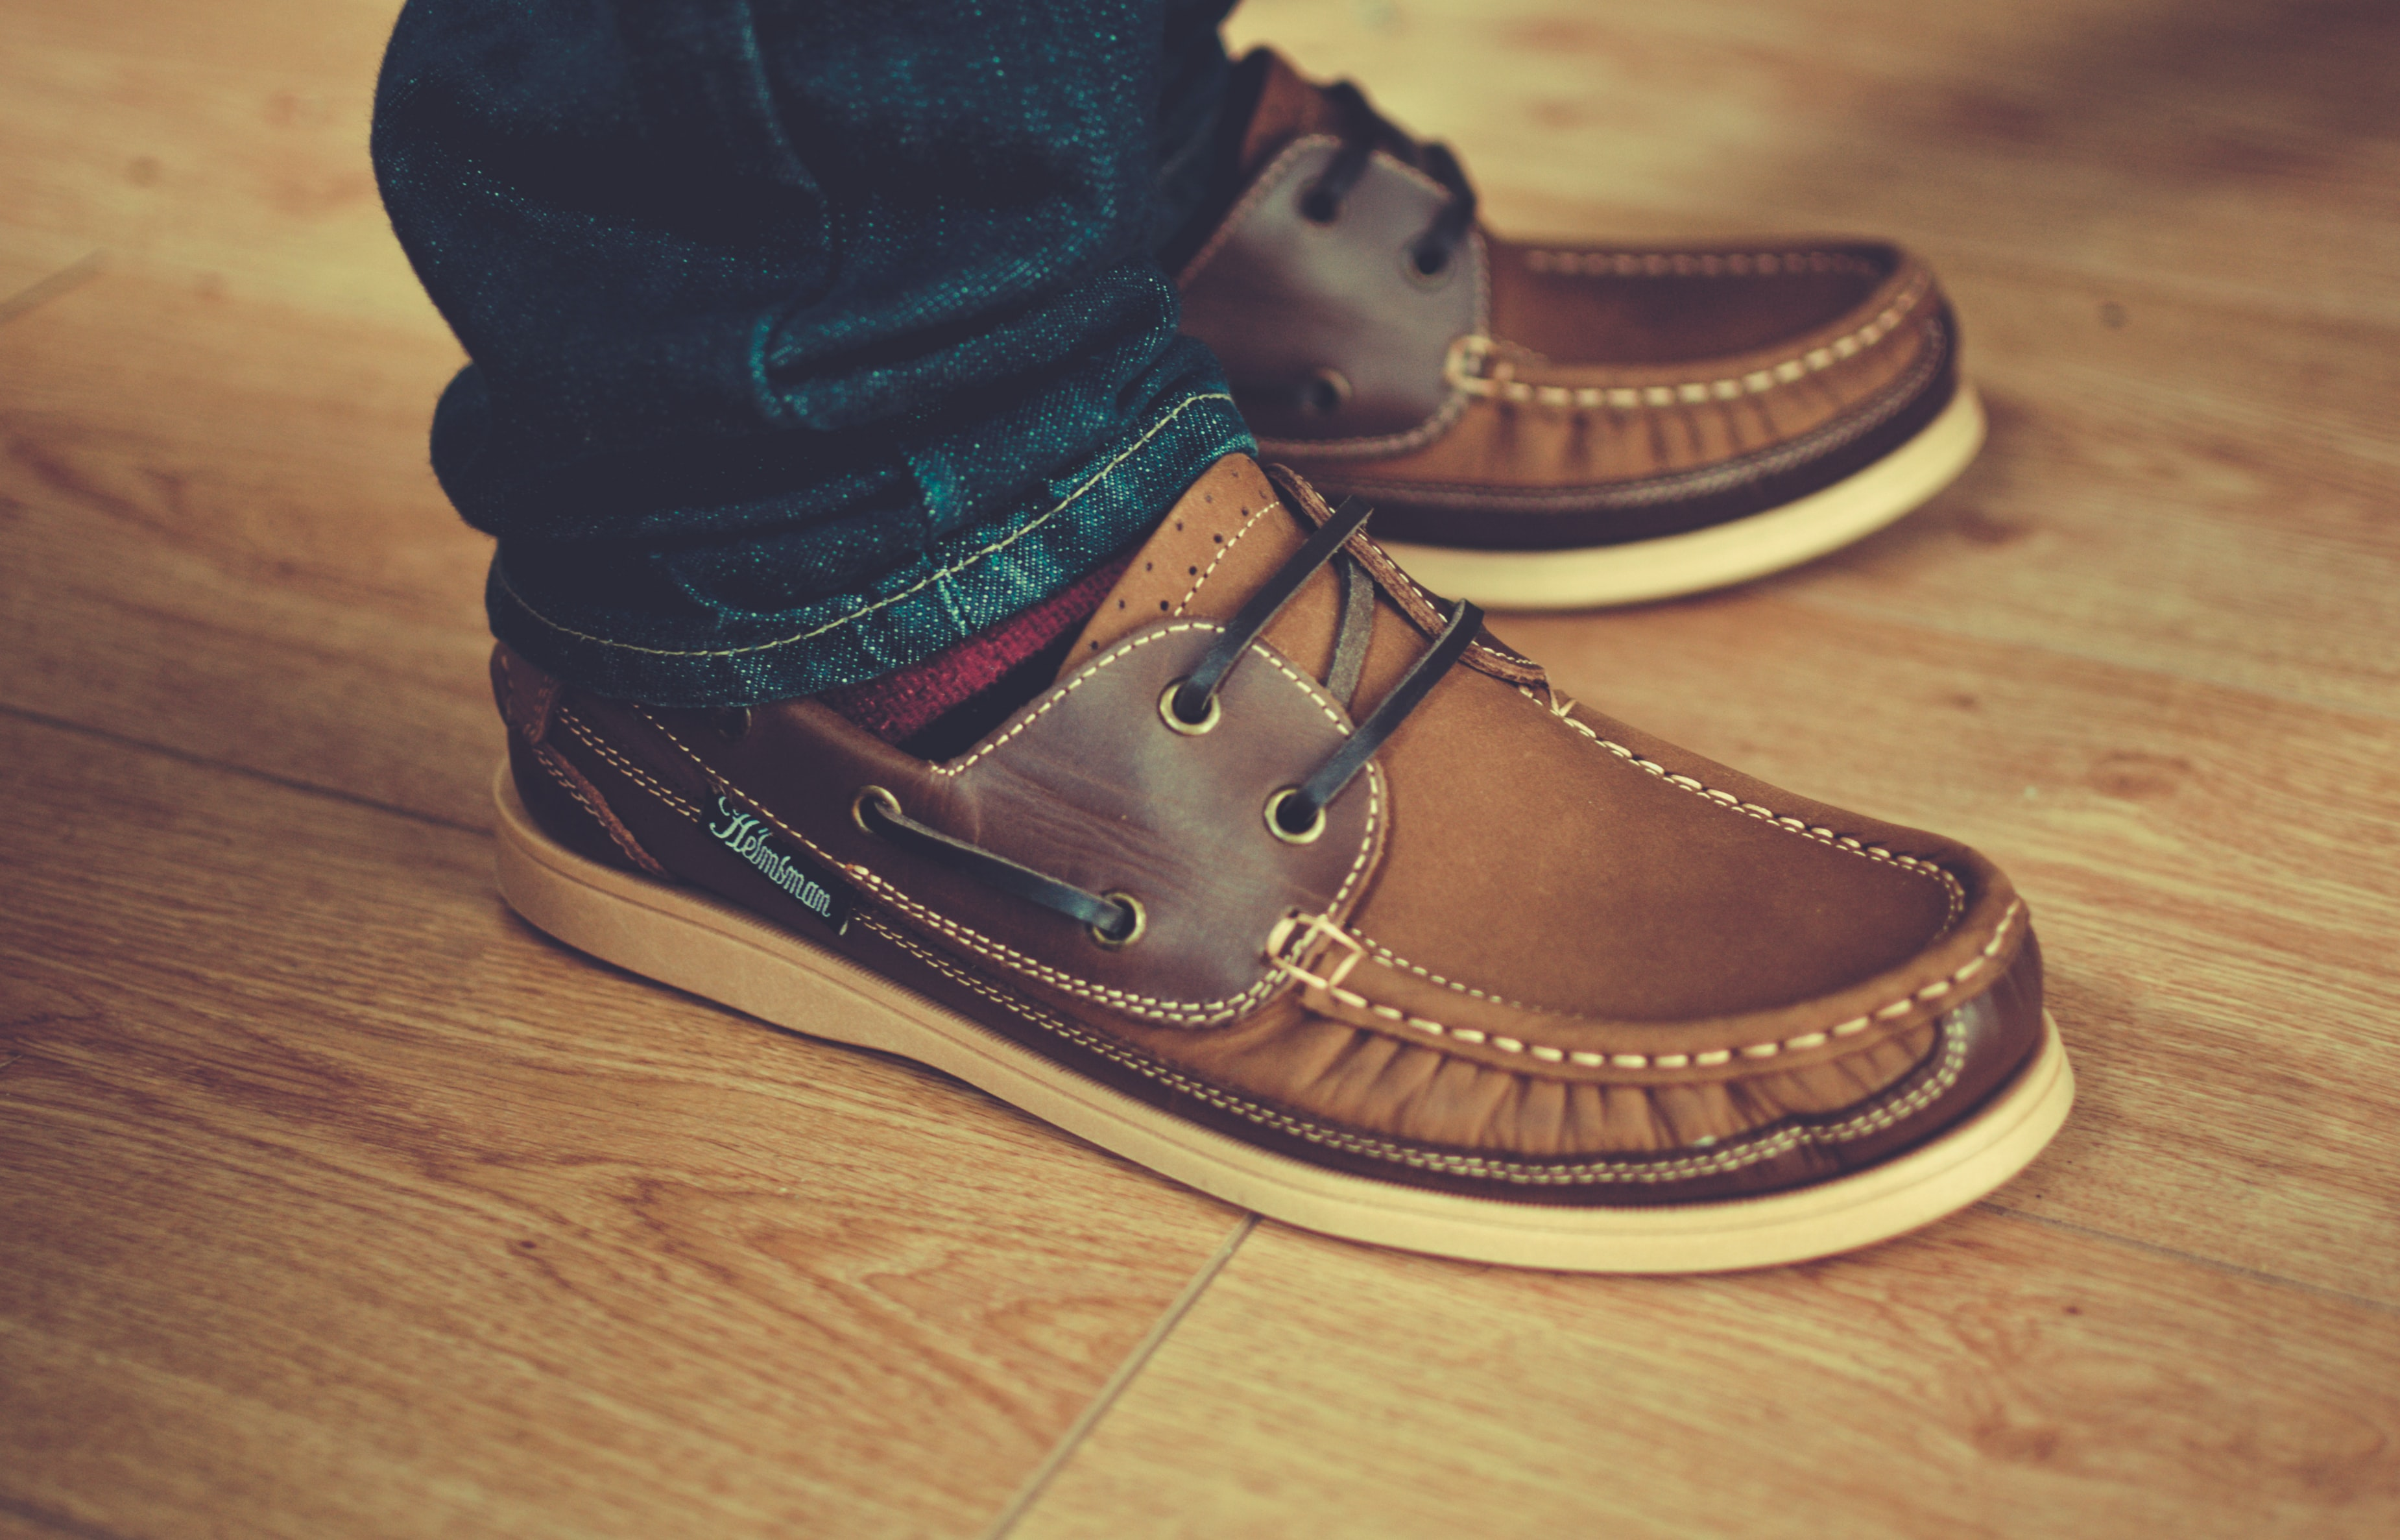 A close-up shot of brown men's loafers on a male's feet